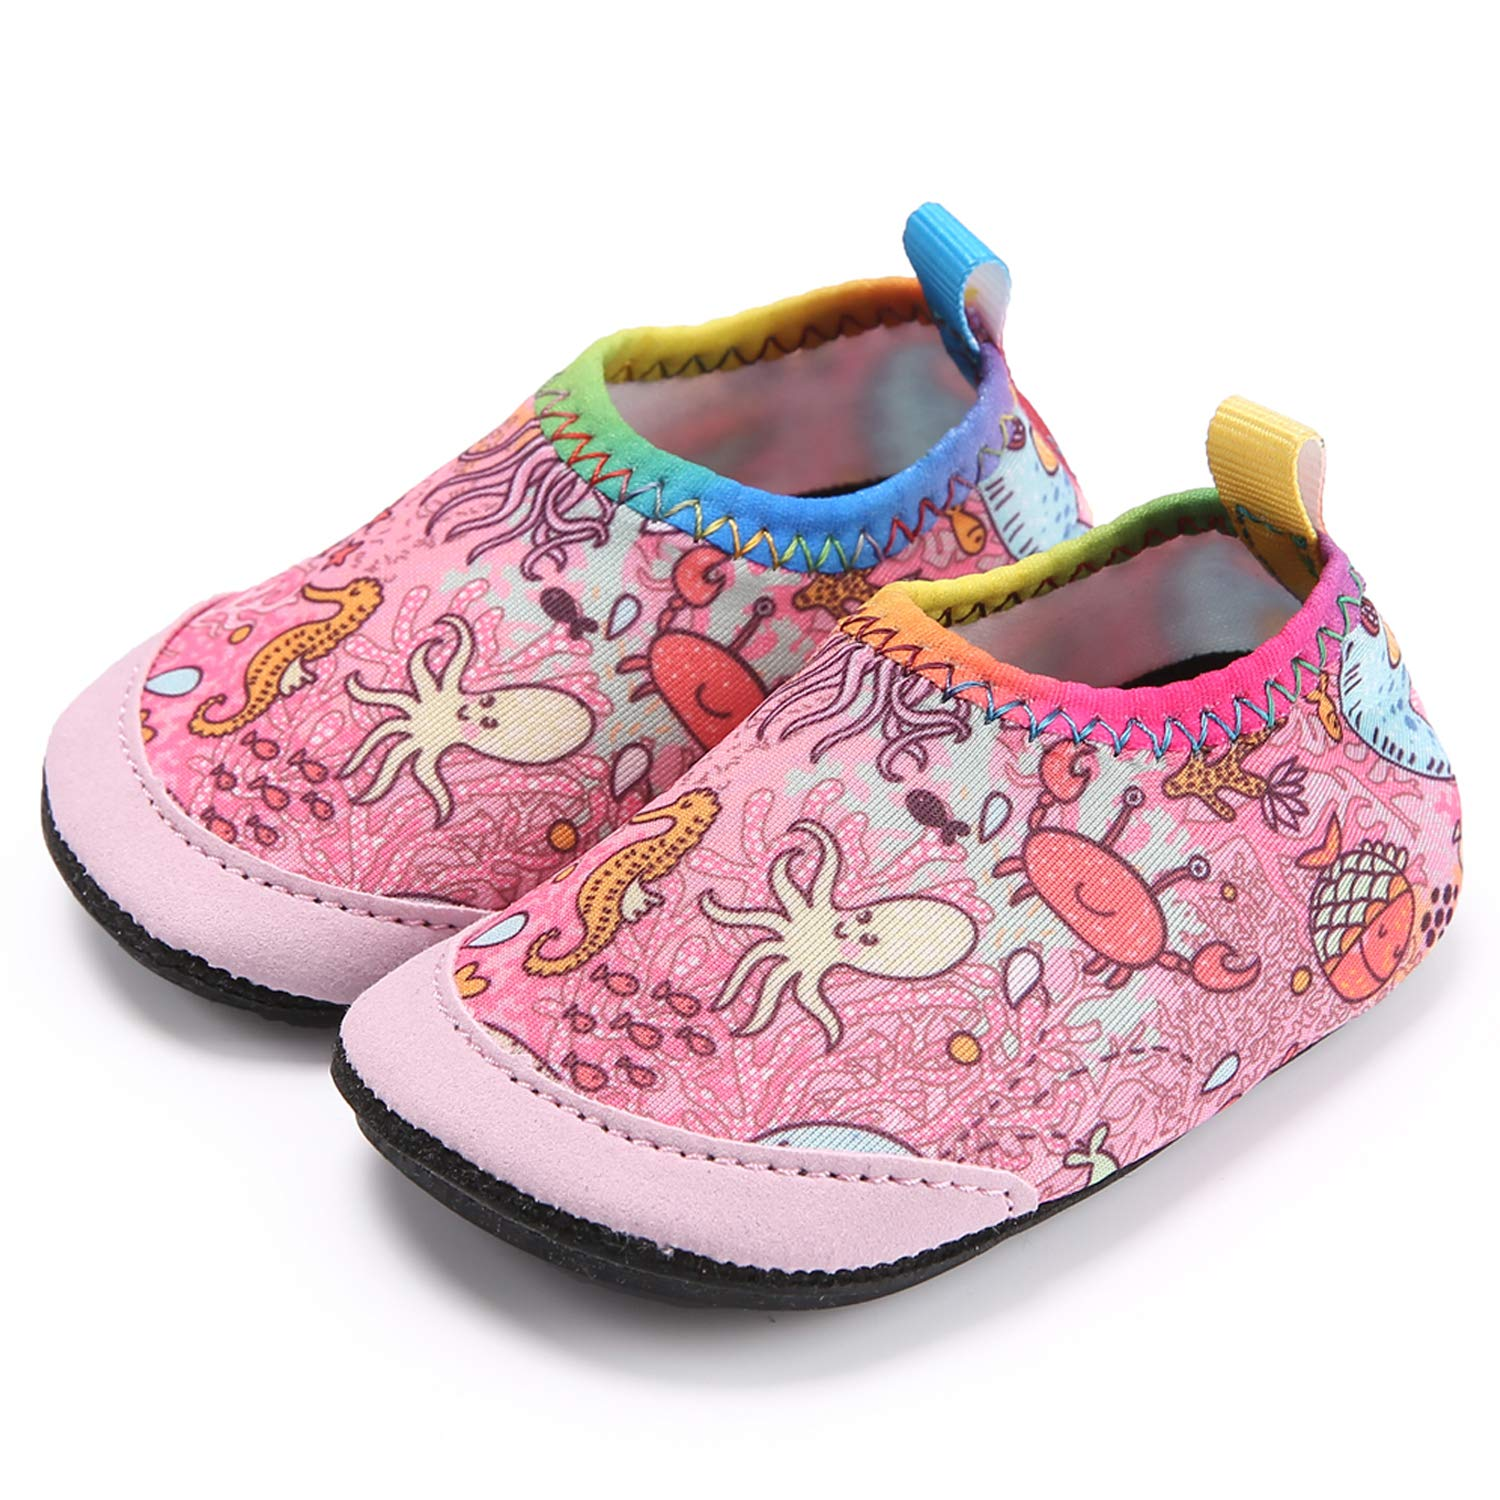 348e9b49d30f1 Fabric Baby Shoe Pattern – Sewing Patterns for Baby